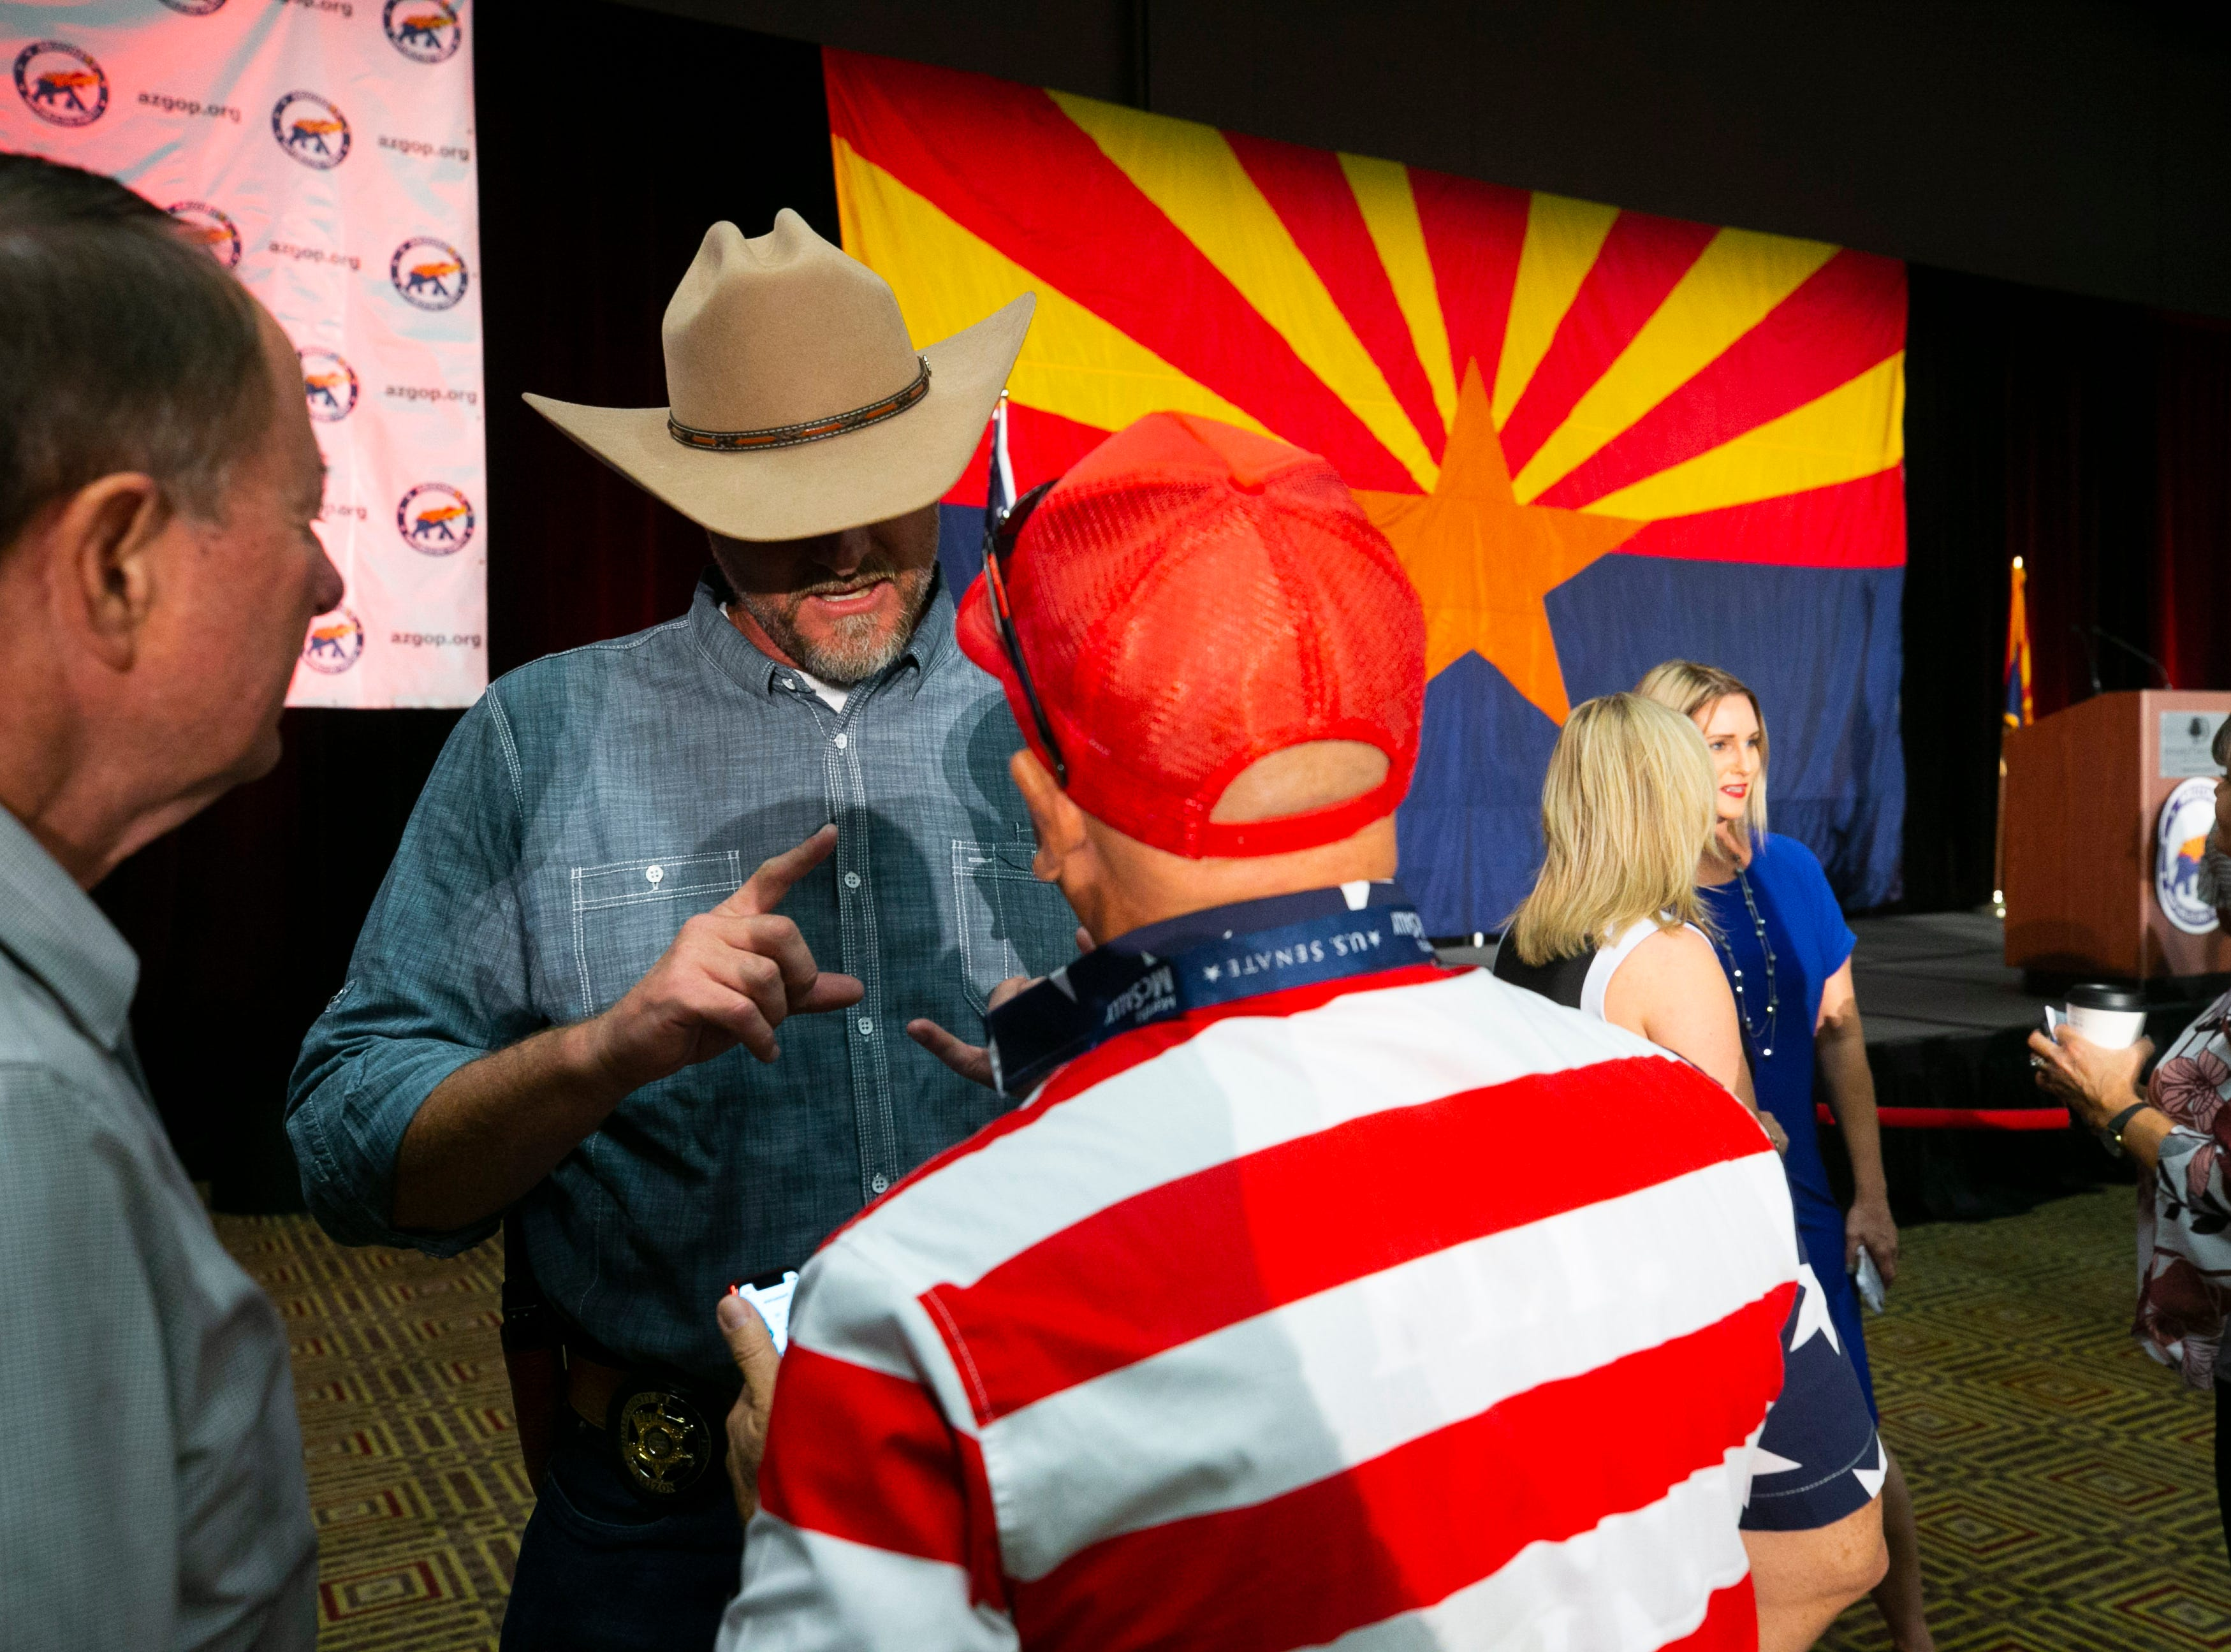 Pinal County Sheriff Mark Lamb (left) talks to fellow Republicans at the Republican watch party at the DoubleTree Resort in Scottsdale on Election Day for the midterms on Tuesday, November 6, 2018.